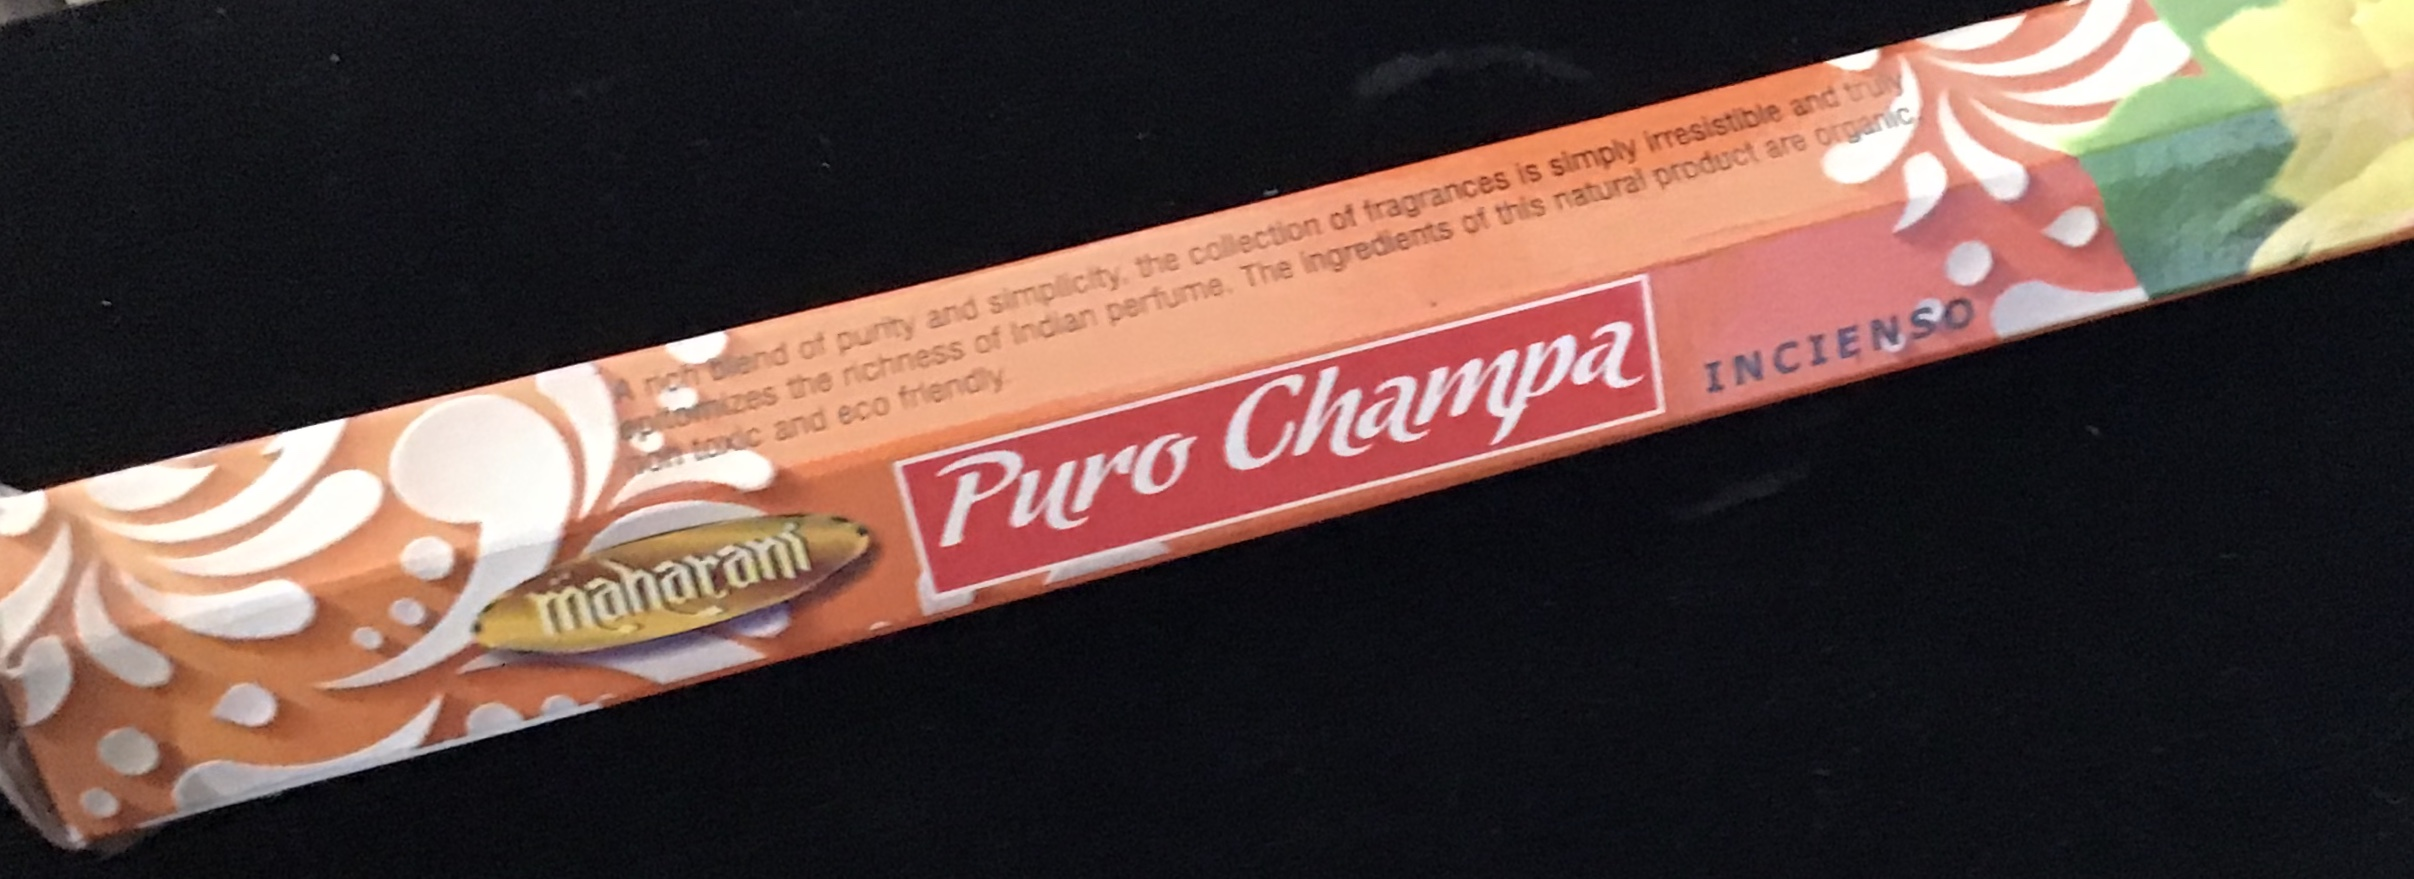 Pure Champa Incense Sticks